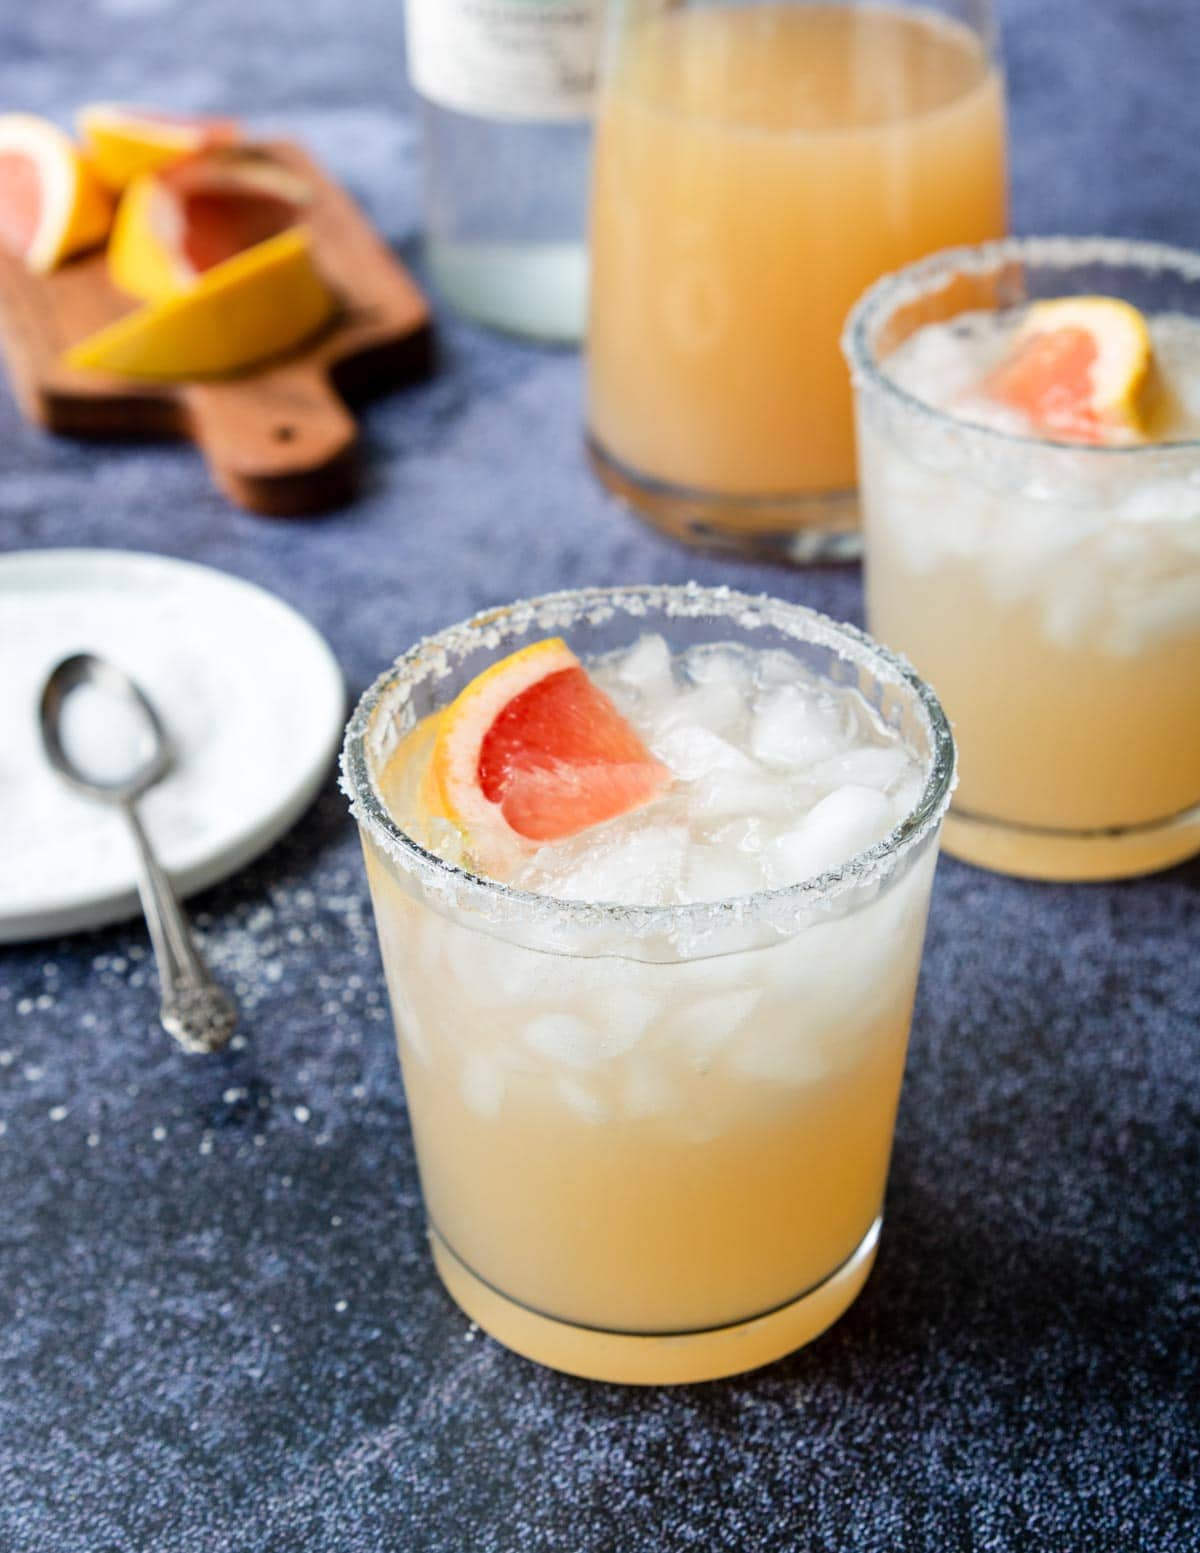 a glass of grapefruit margarita with a salty rim and a fresh grapefruit wedge